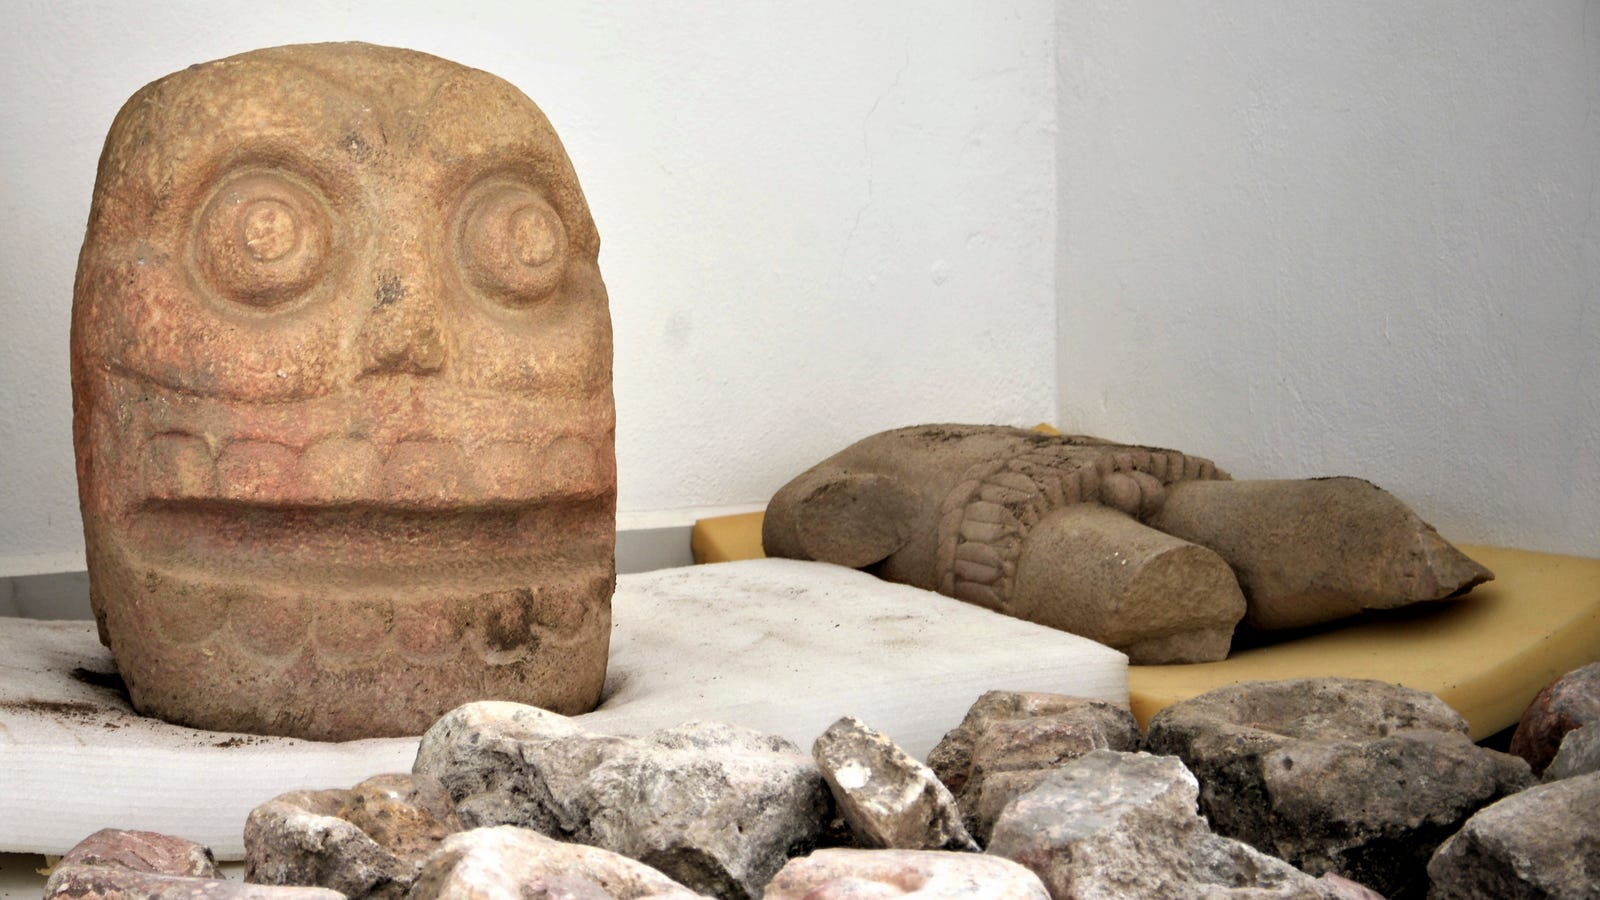 QnA VBage Temple Dedicated to Aztec God of Sacrificial Flaying Uncovered in Mexico